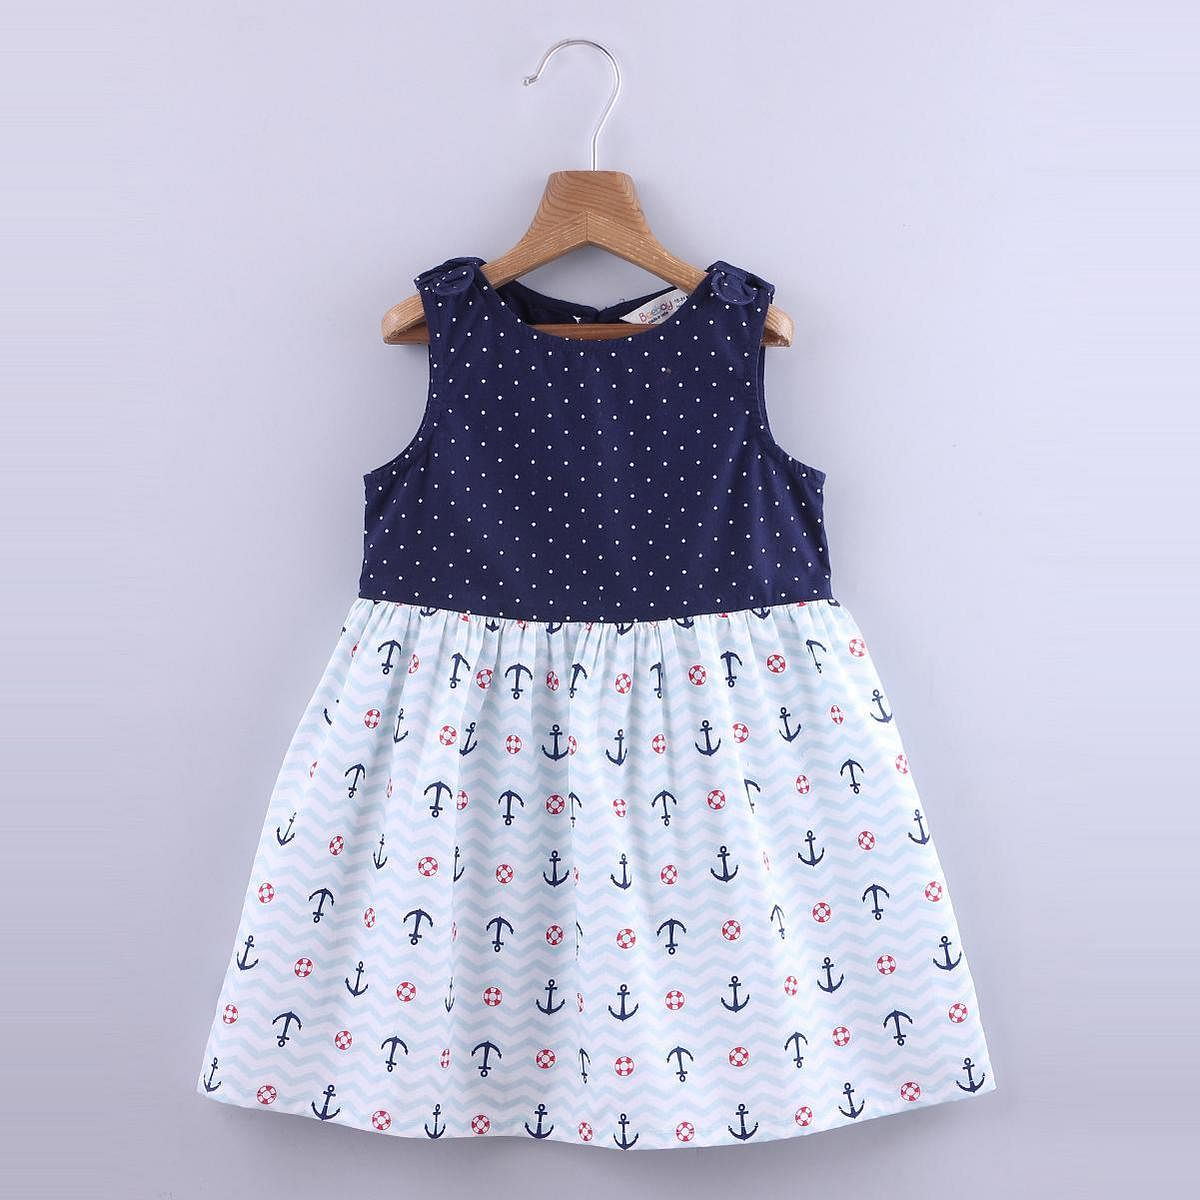 Beebay - Blue Colored Anchor Print Bow Cotton Dress For Girls